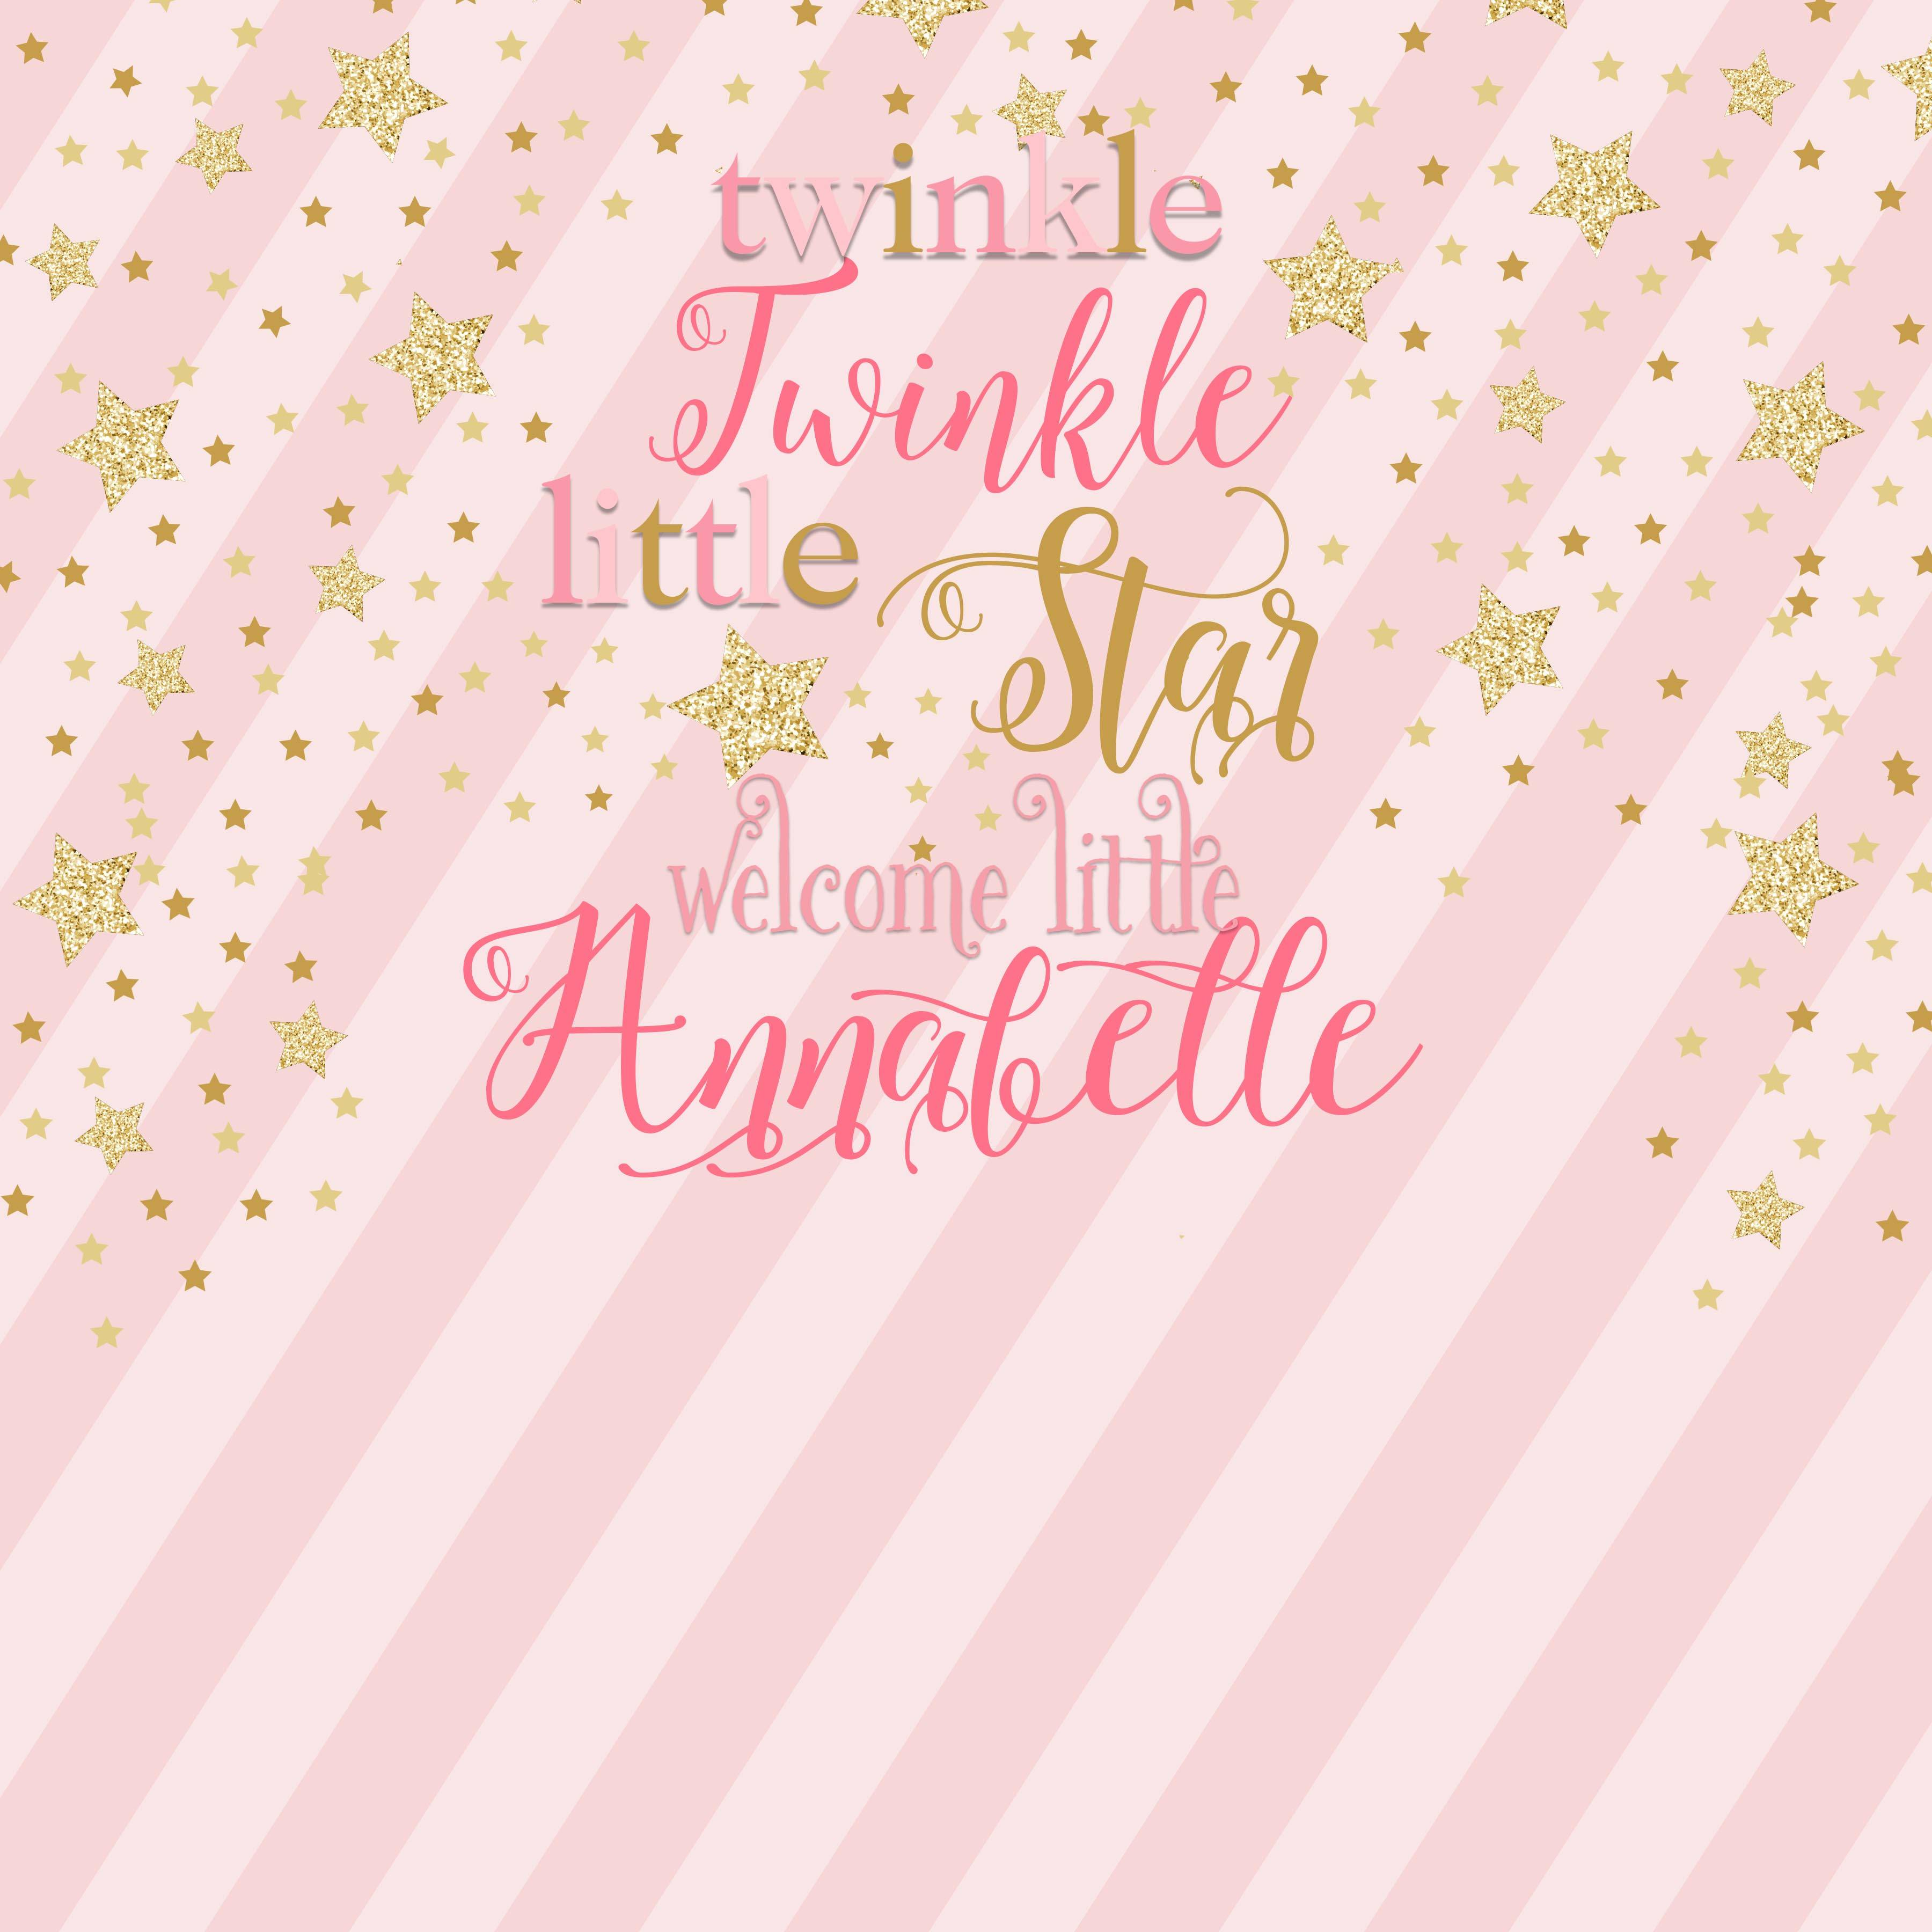 Twinkle Little Star Girl Photo Booth Backdrop